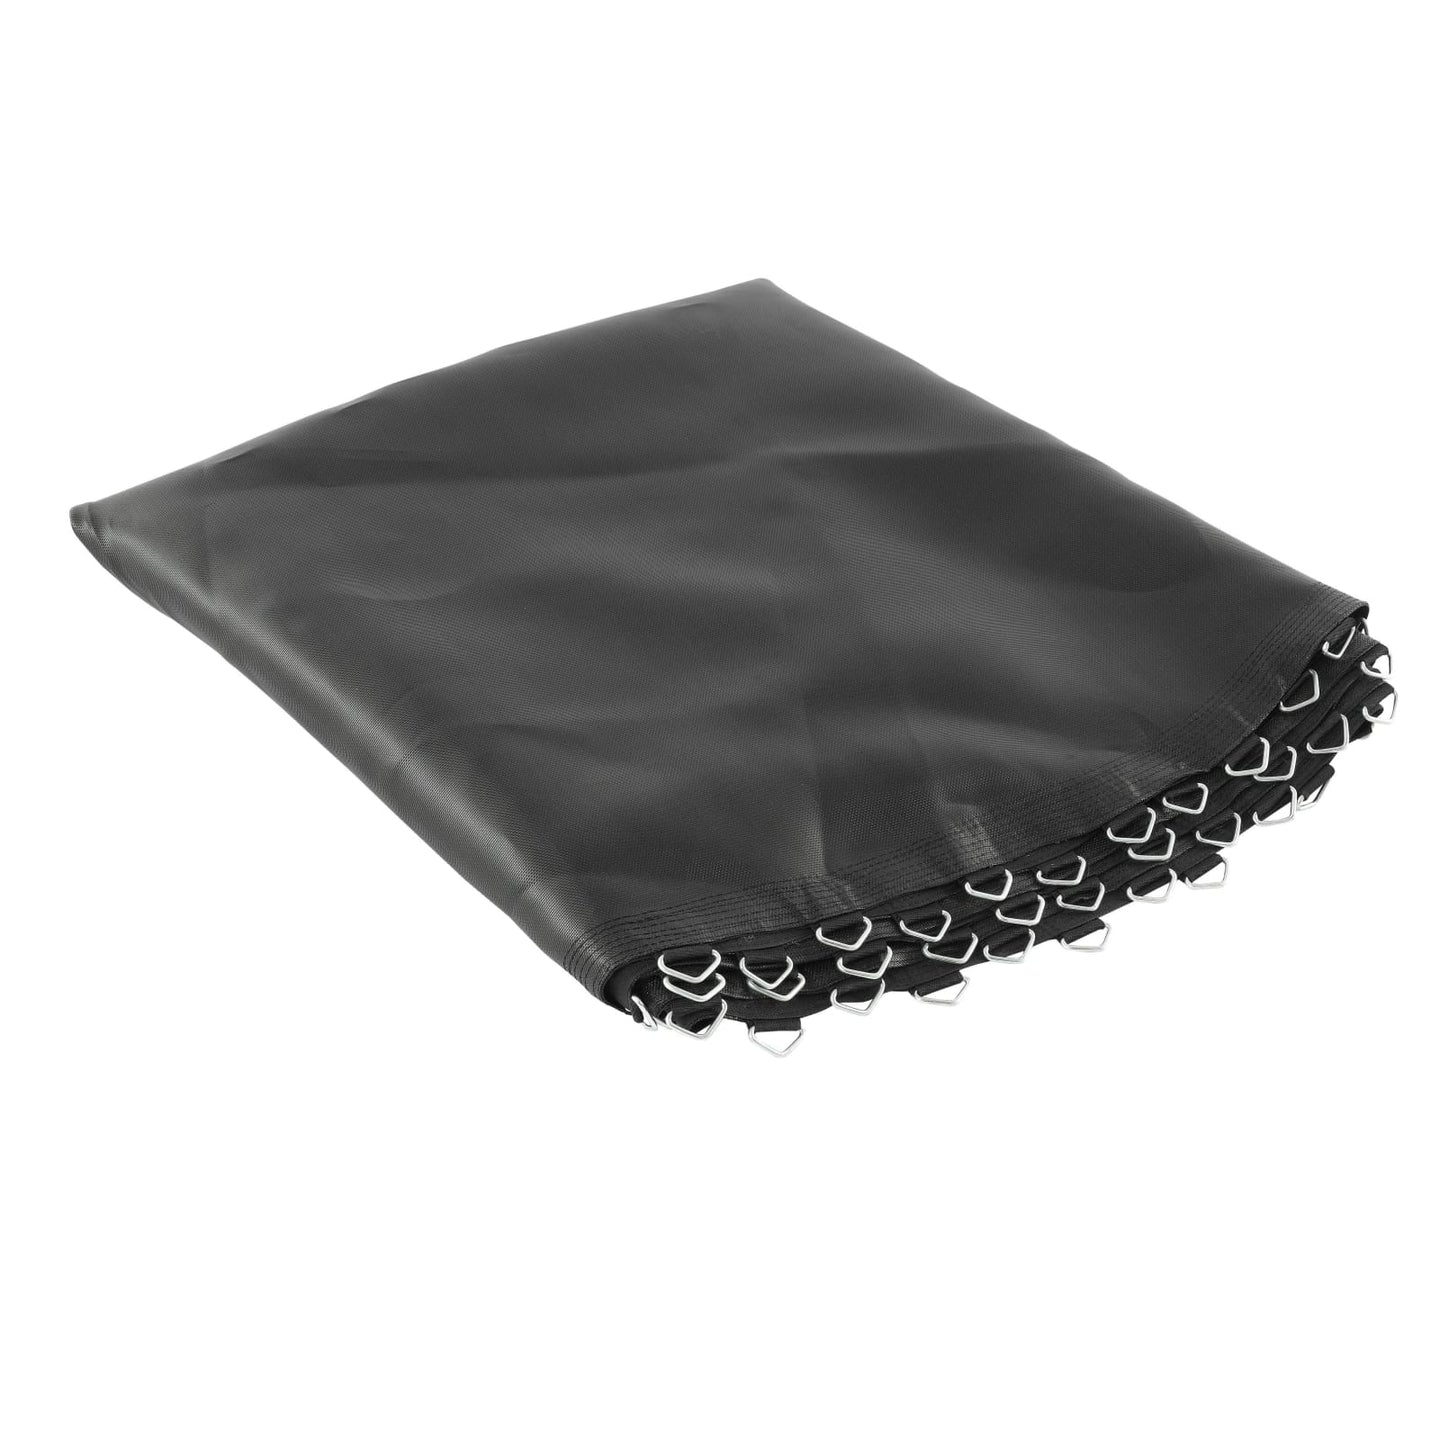 Upper Bounce Trampoline Replacement Jumping Mat Fits For 14 Ft. Round Frames W/ 88 V-Rings 8.5 Springs - Trampoline Replacements